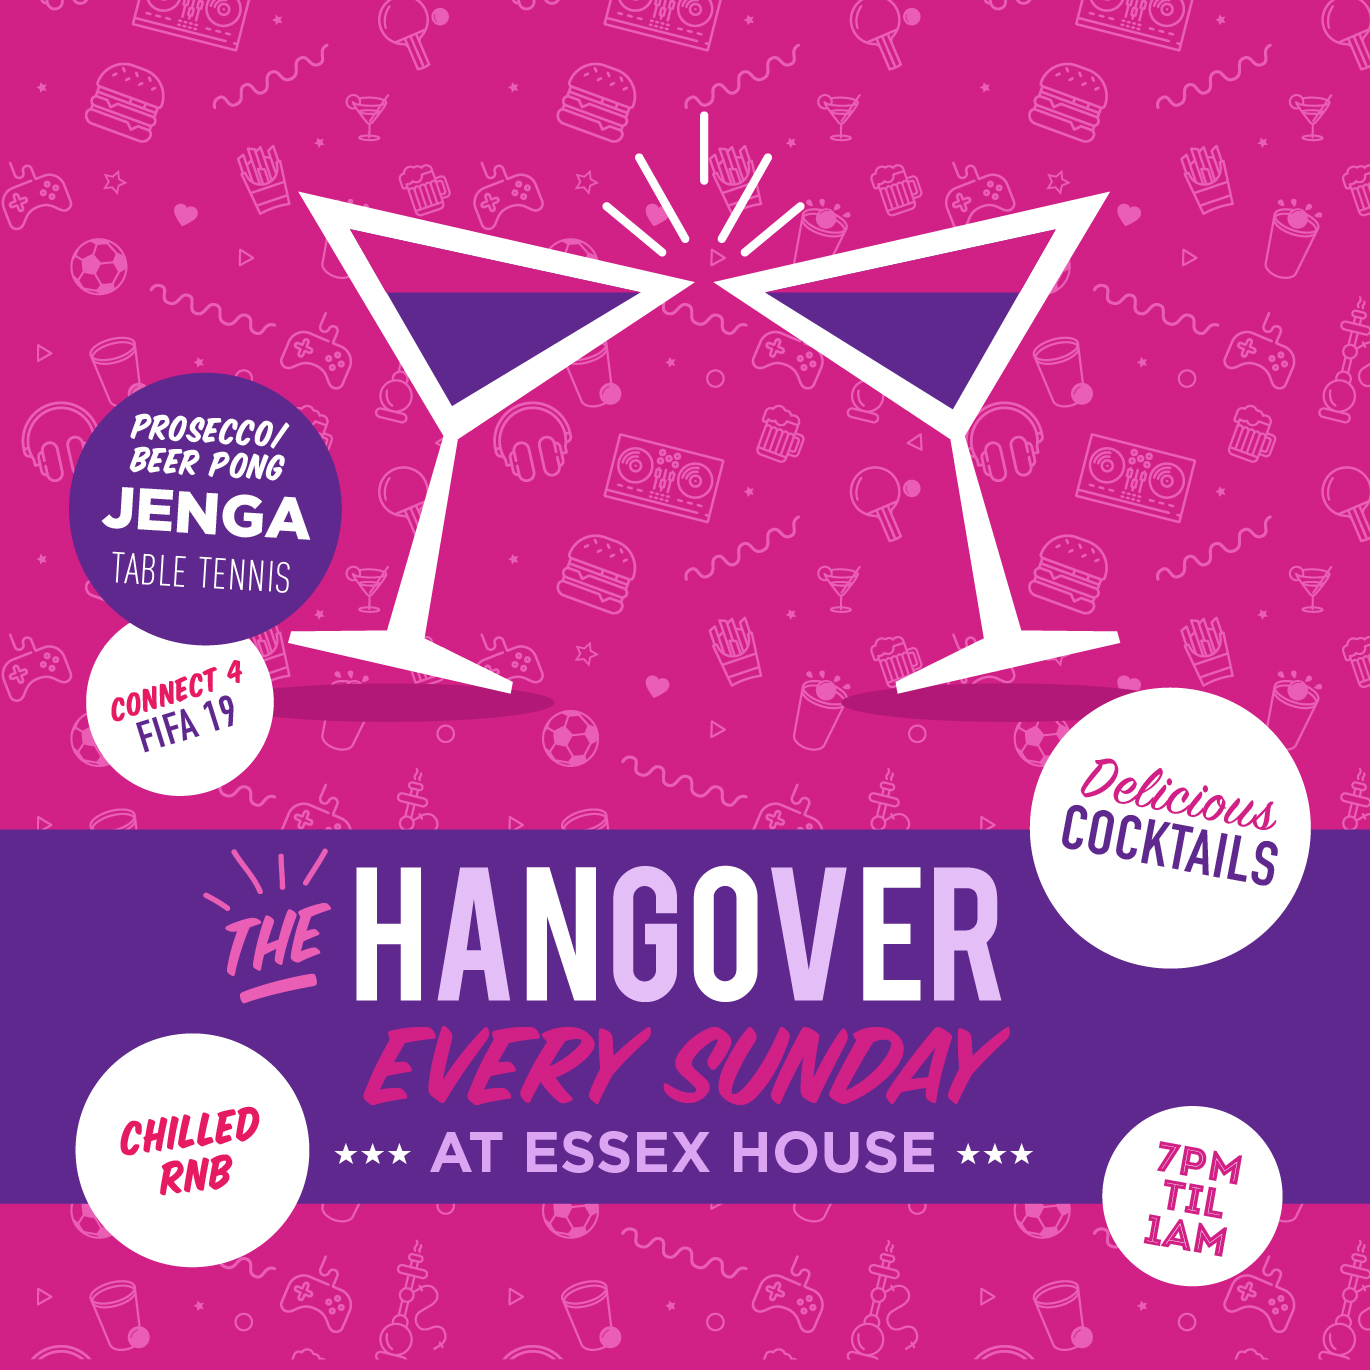 The Hangover generic (Mar 19) A6 sq